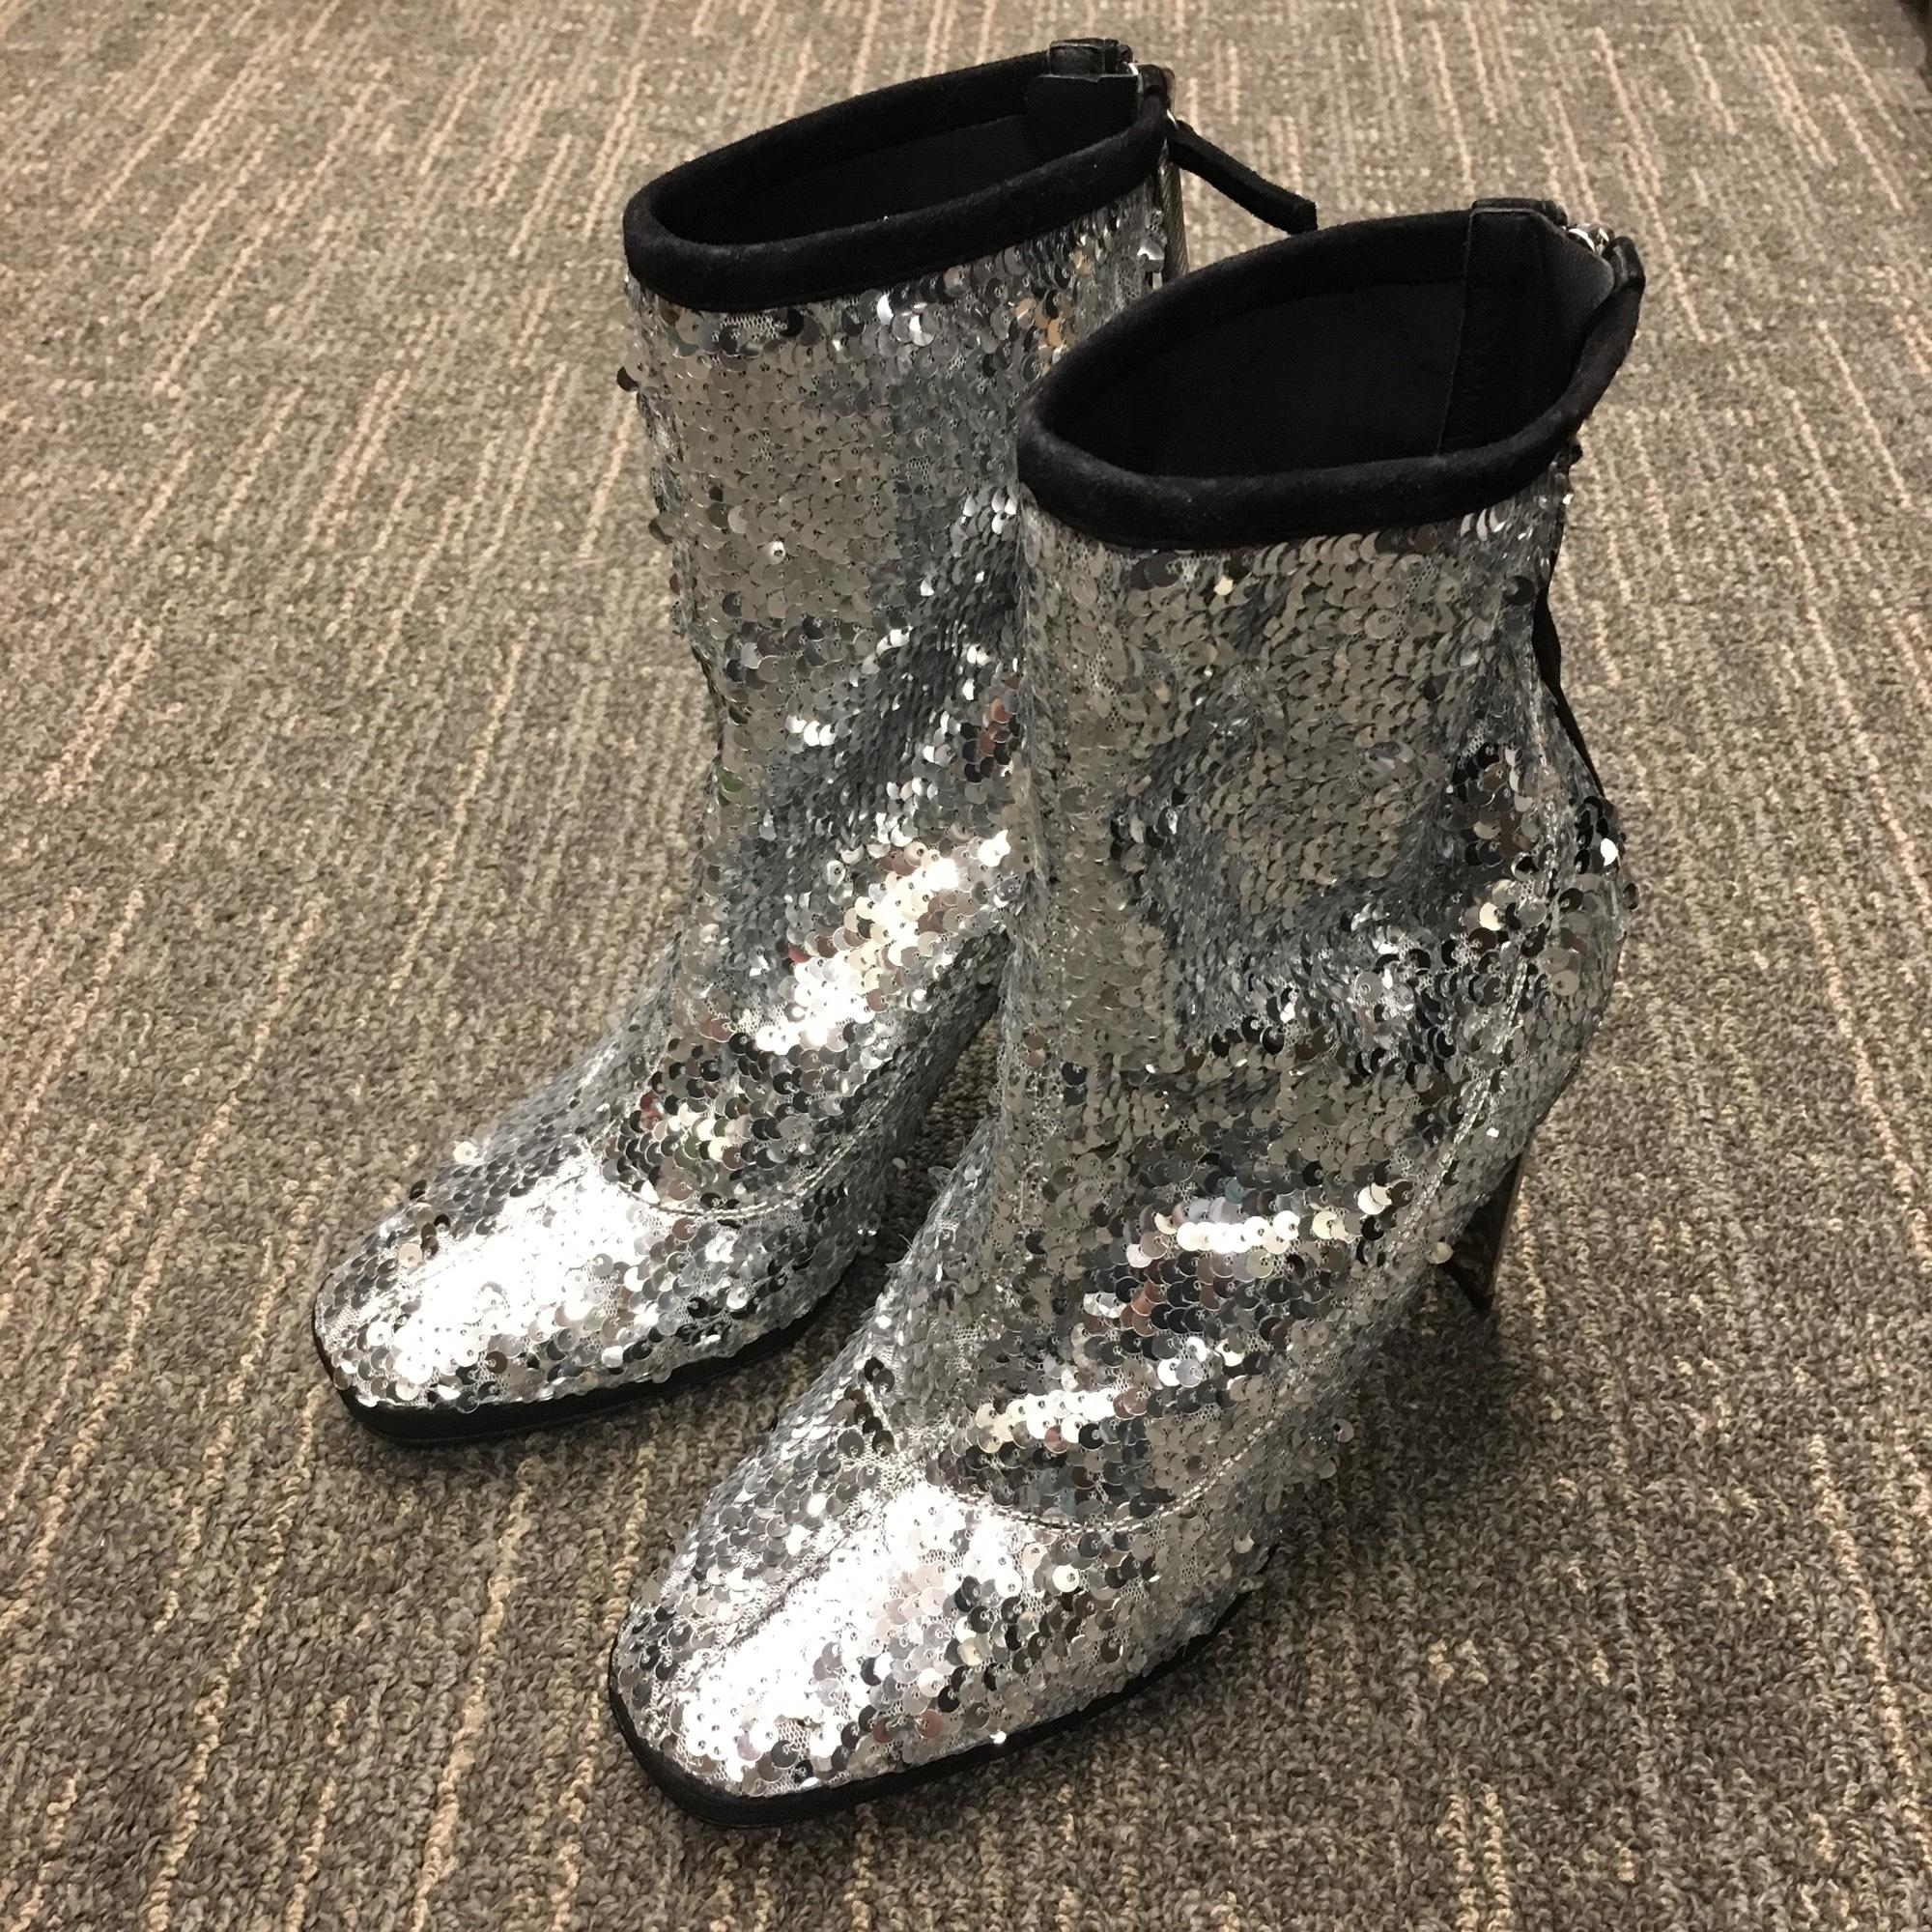 72190e79a22 ... Giuseppe Zanotti Silver Stretch Sequin 105mm Metallic Heel Boots Booties  Boots Booties Boots  ...